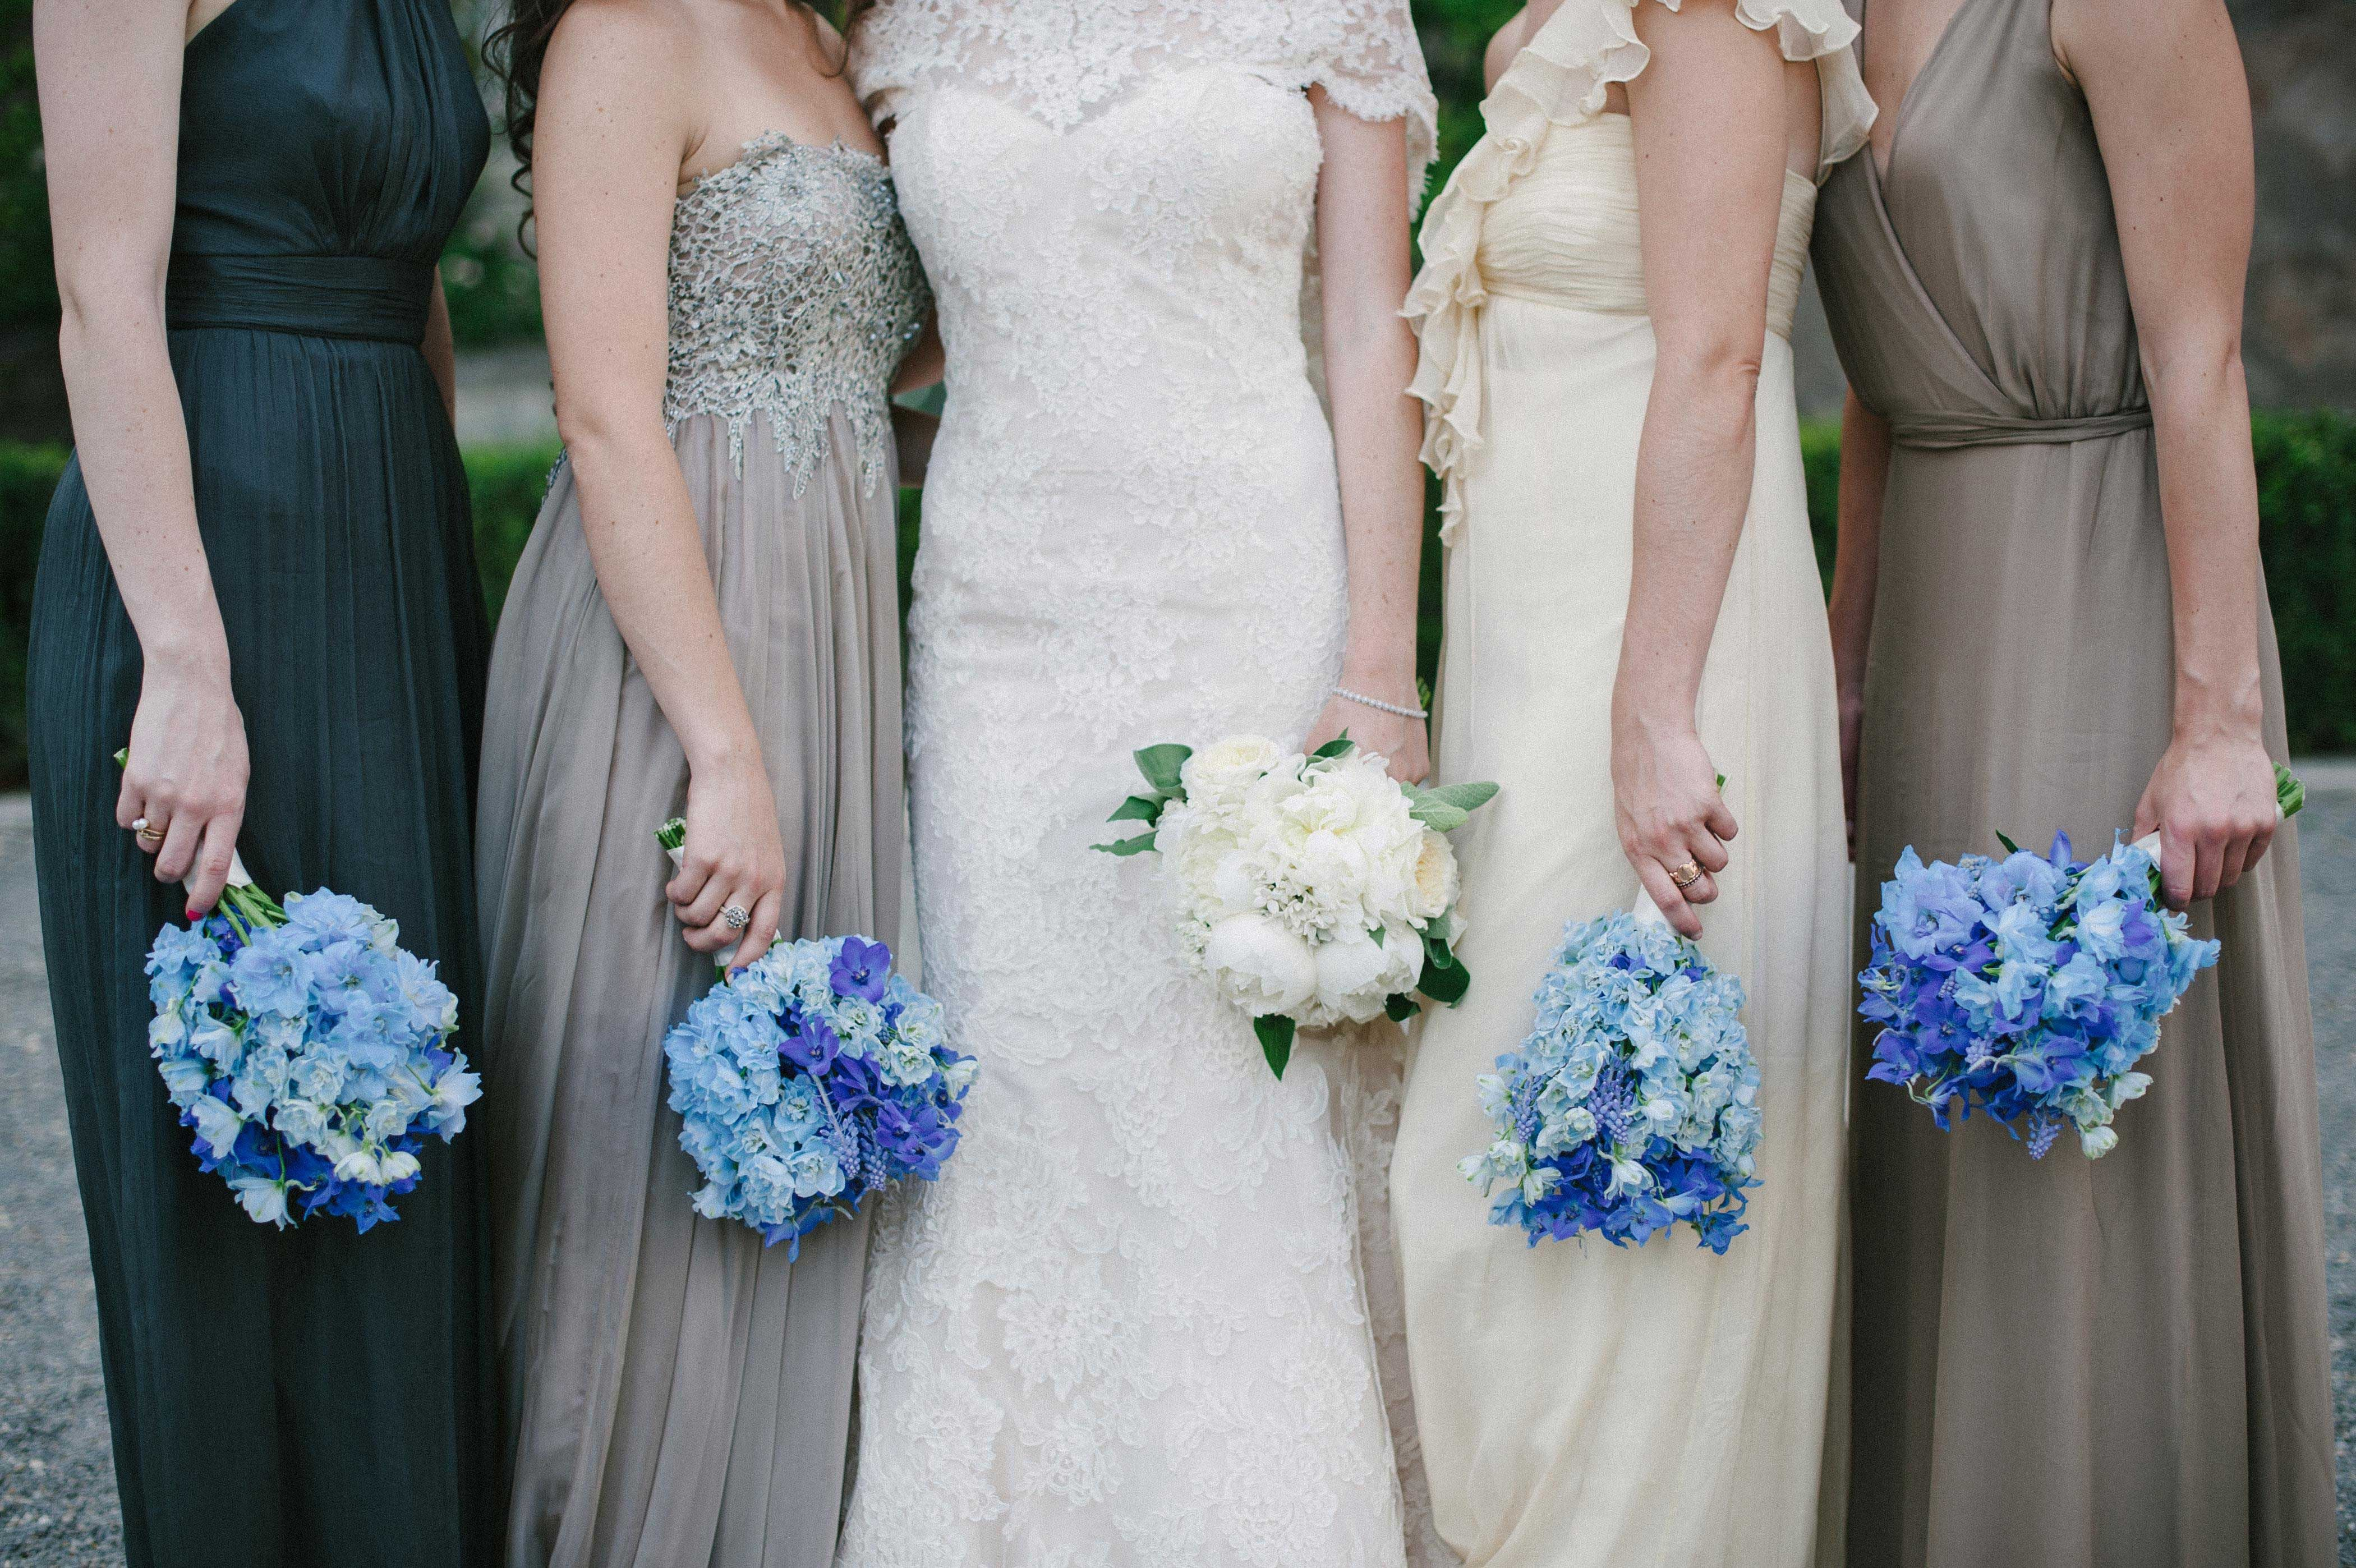 15 Beautiful Bouquet Ideas For Your Bridesmaids Bridesmaid